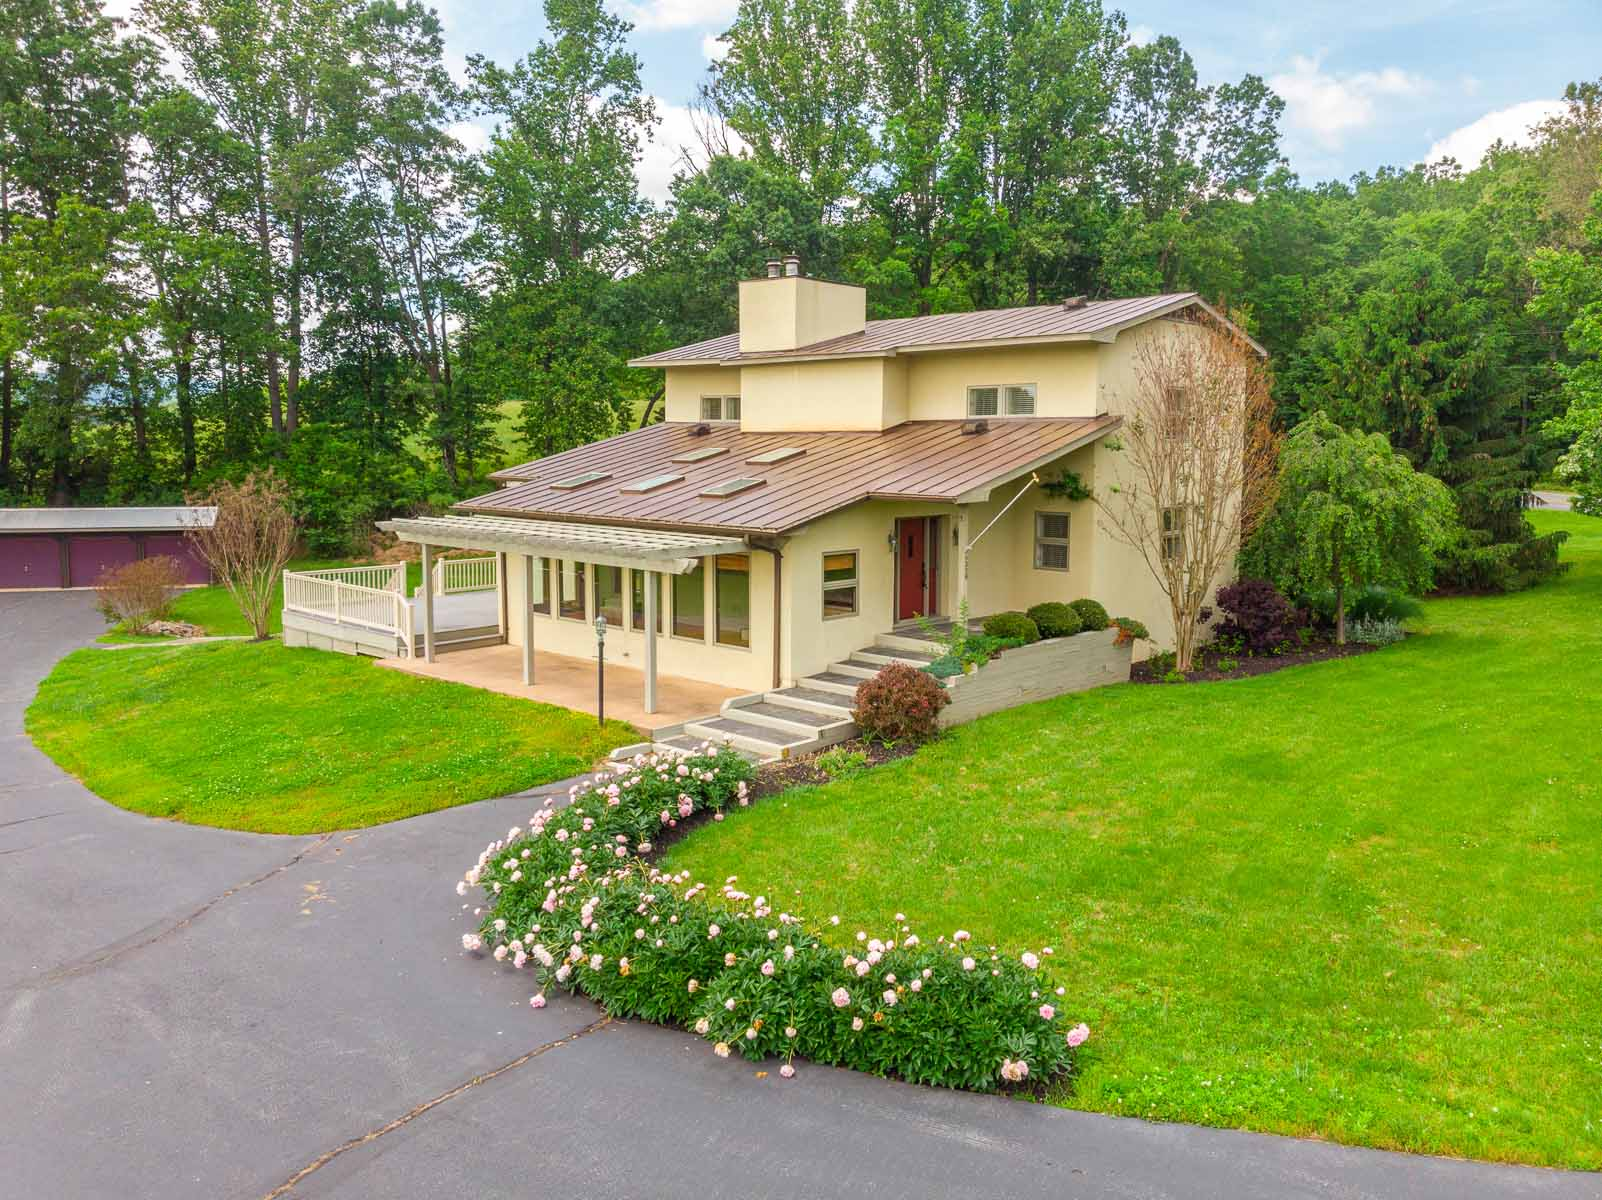 Home for Sale in Earlysville